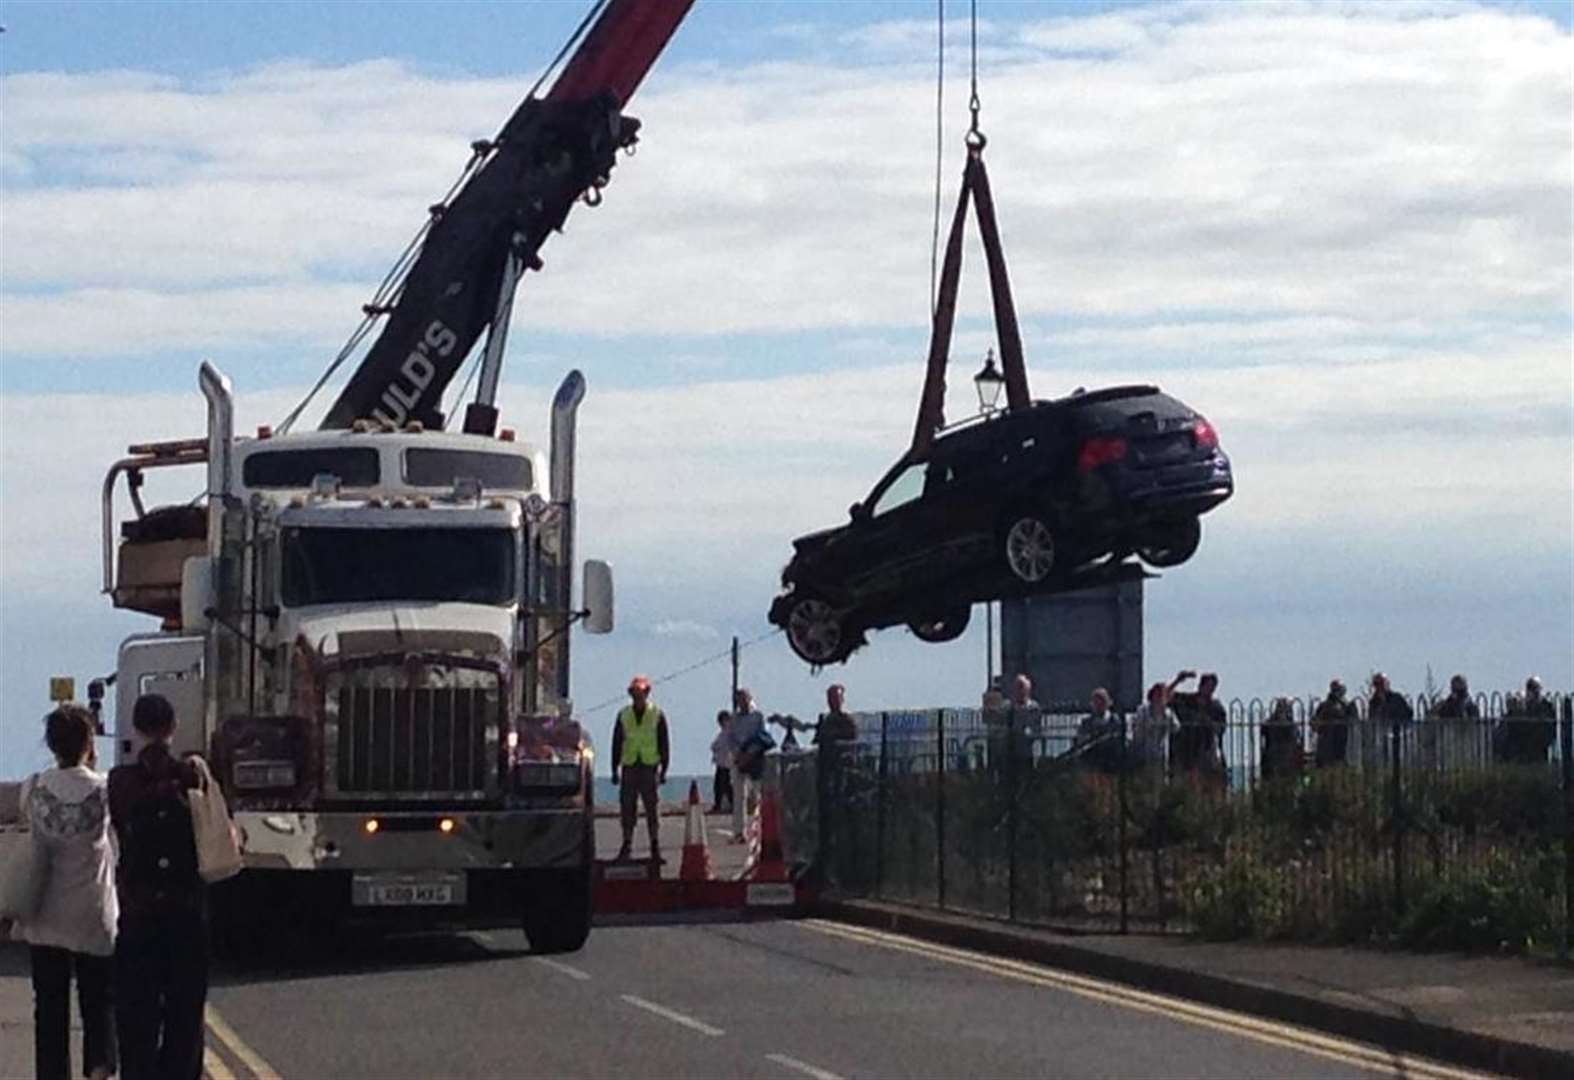 Crane removes car from castle moat